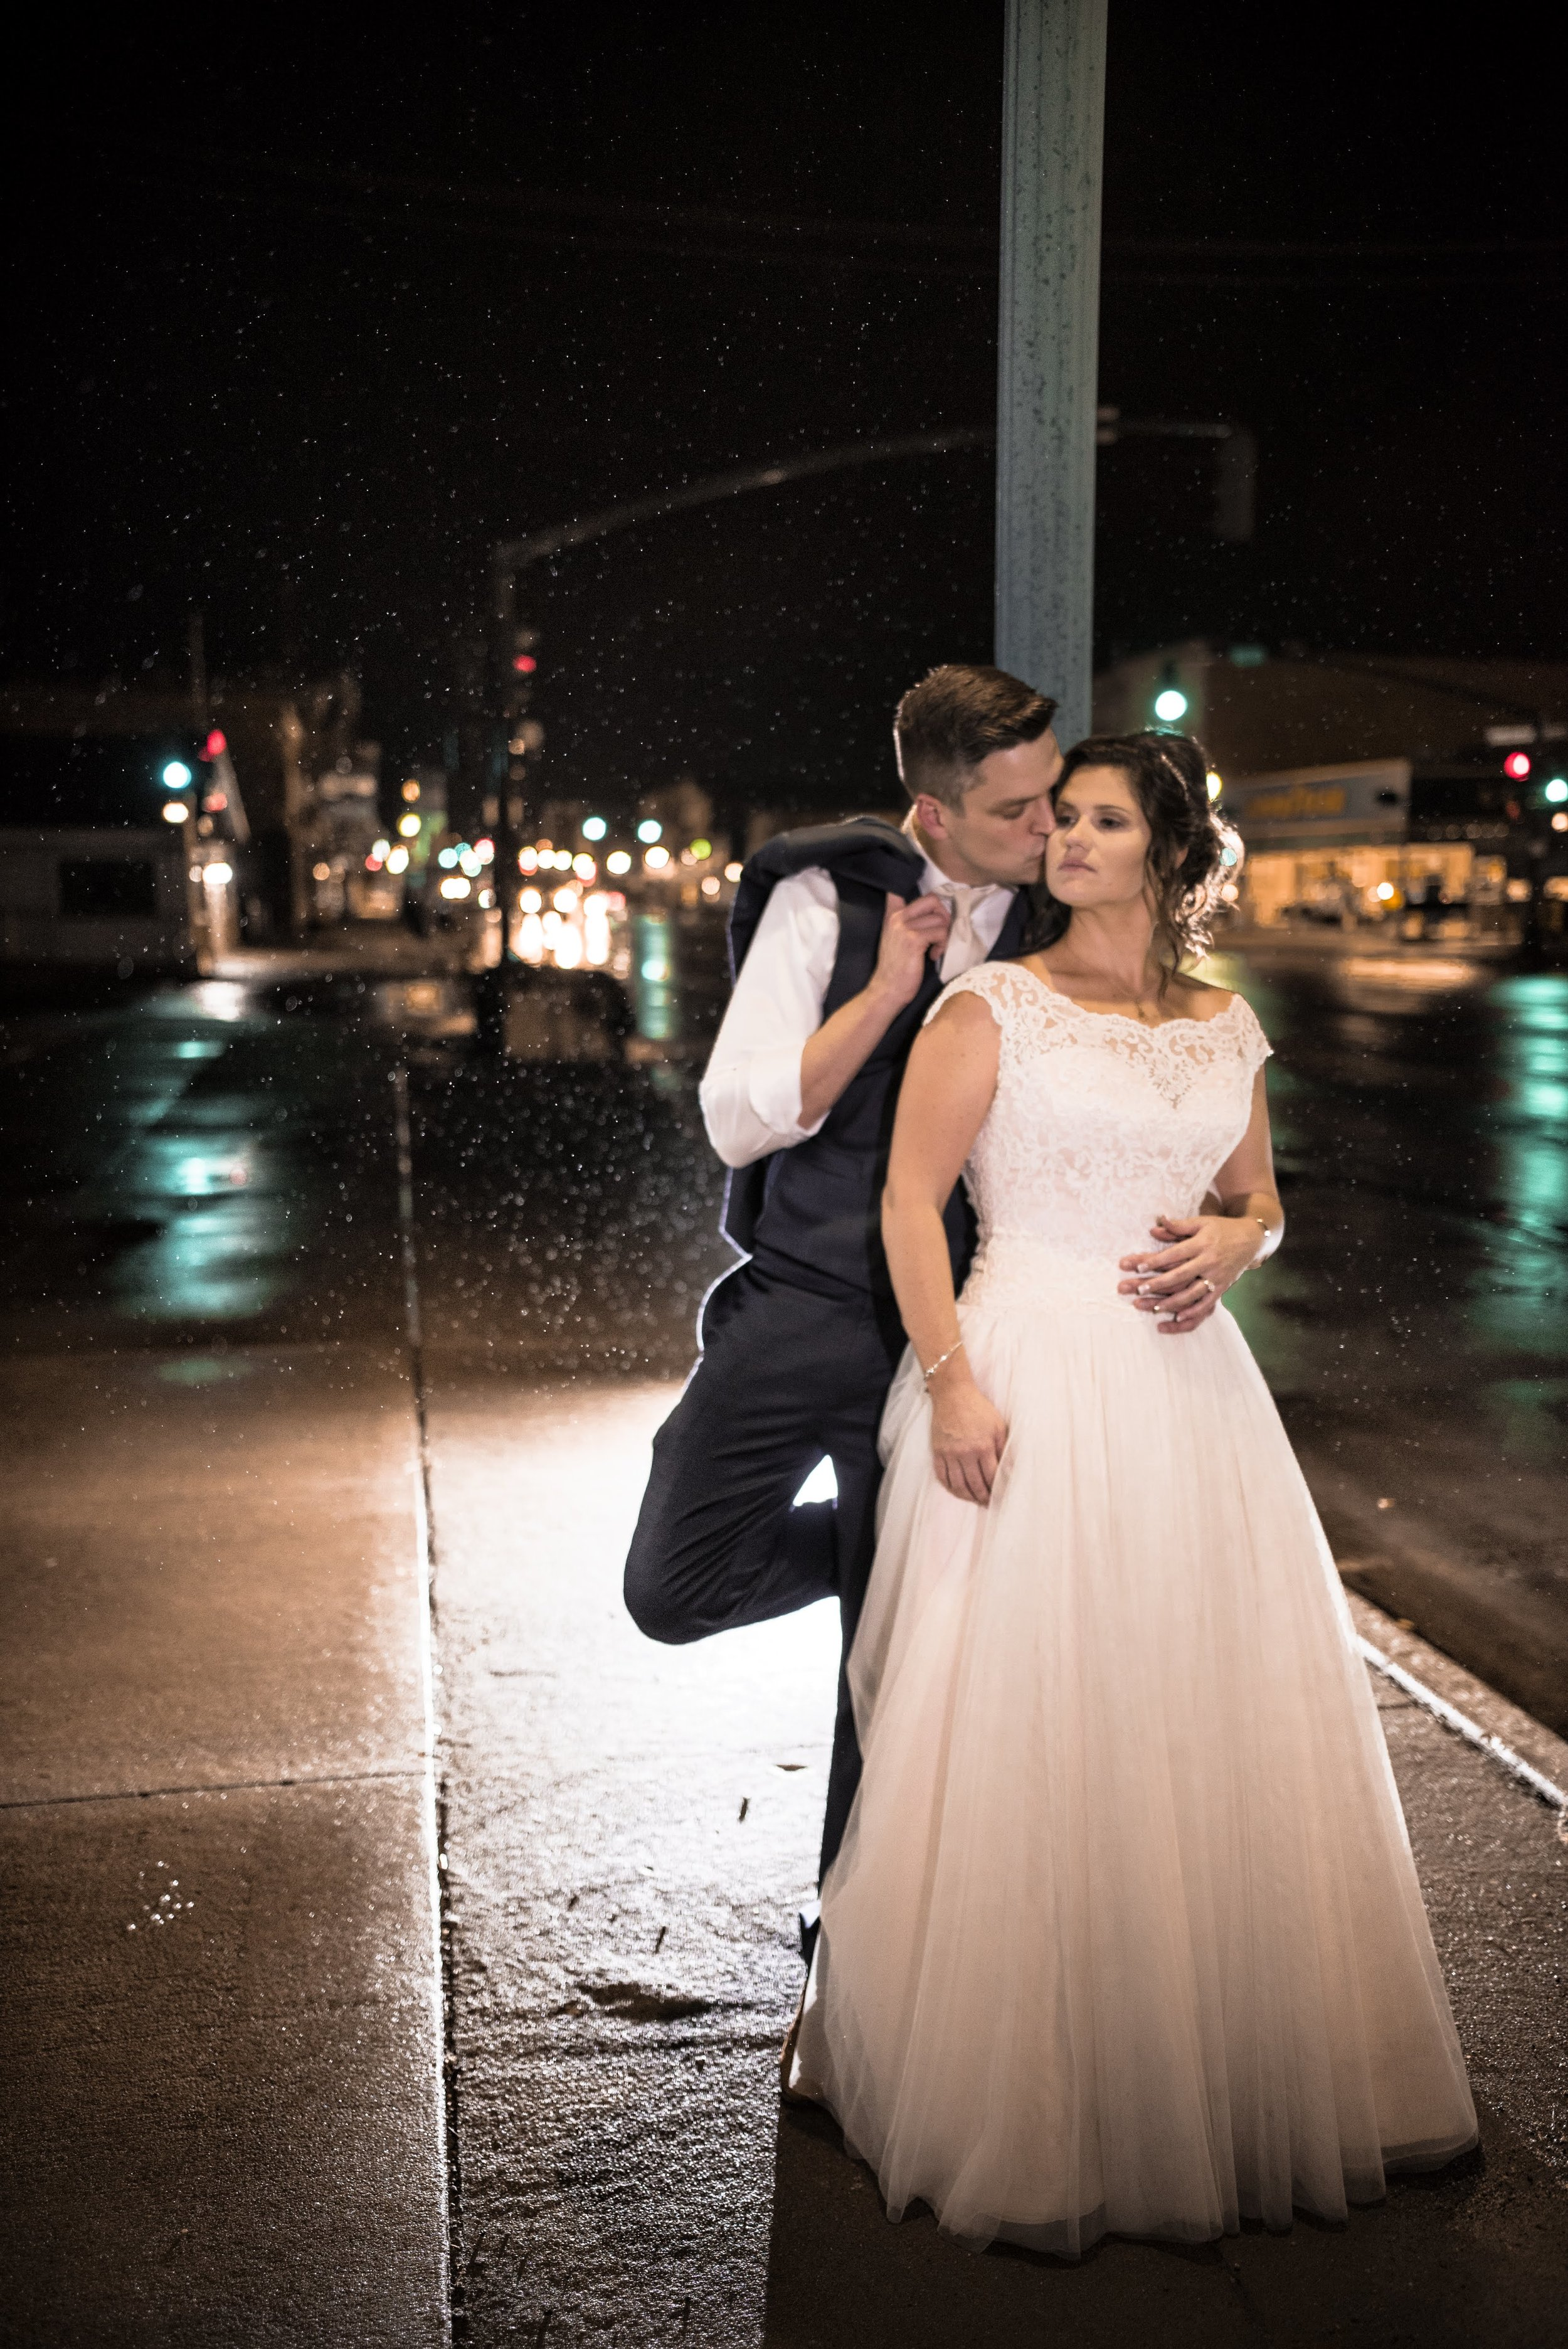 bride-groom-city-streets-kiss-cheek-in-rain.jpg